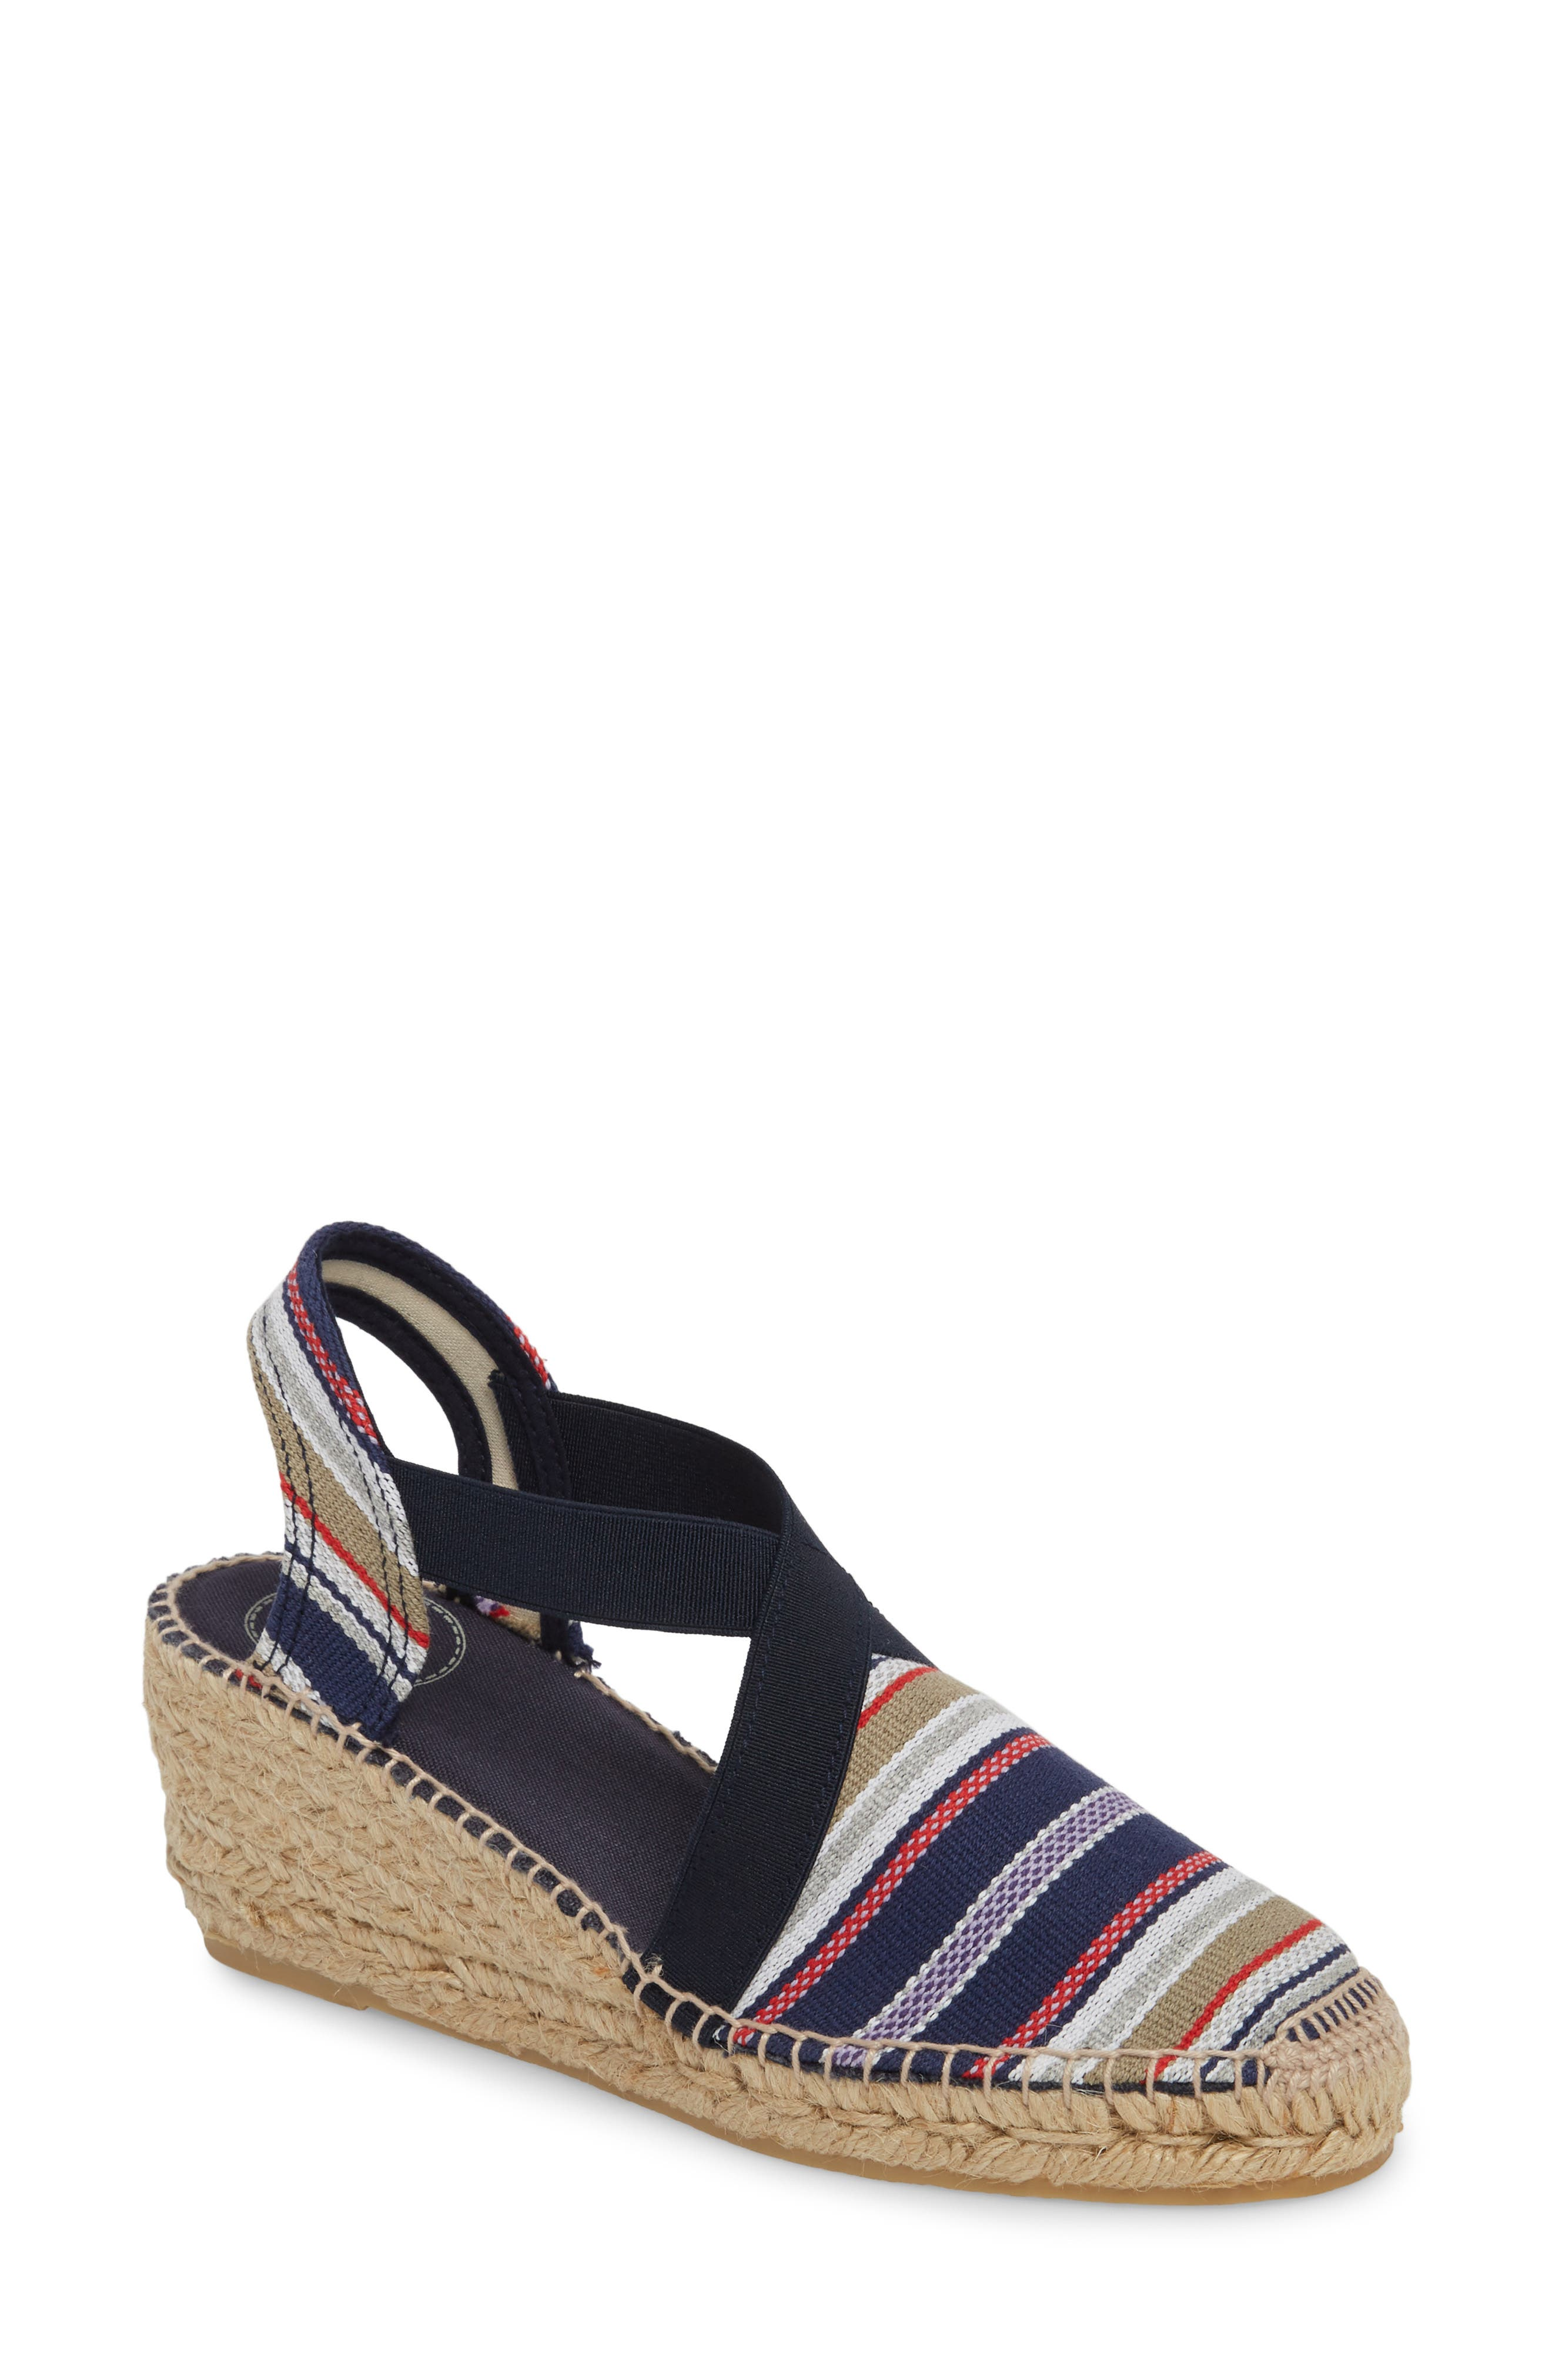 'Tarbes' Espadrille Wedge Sandal,                             Main thumbnail 1, color,                             Navy Fabric